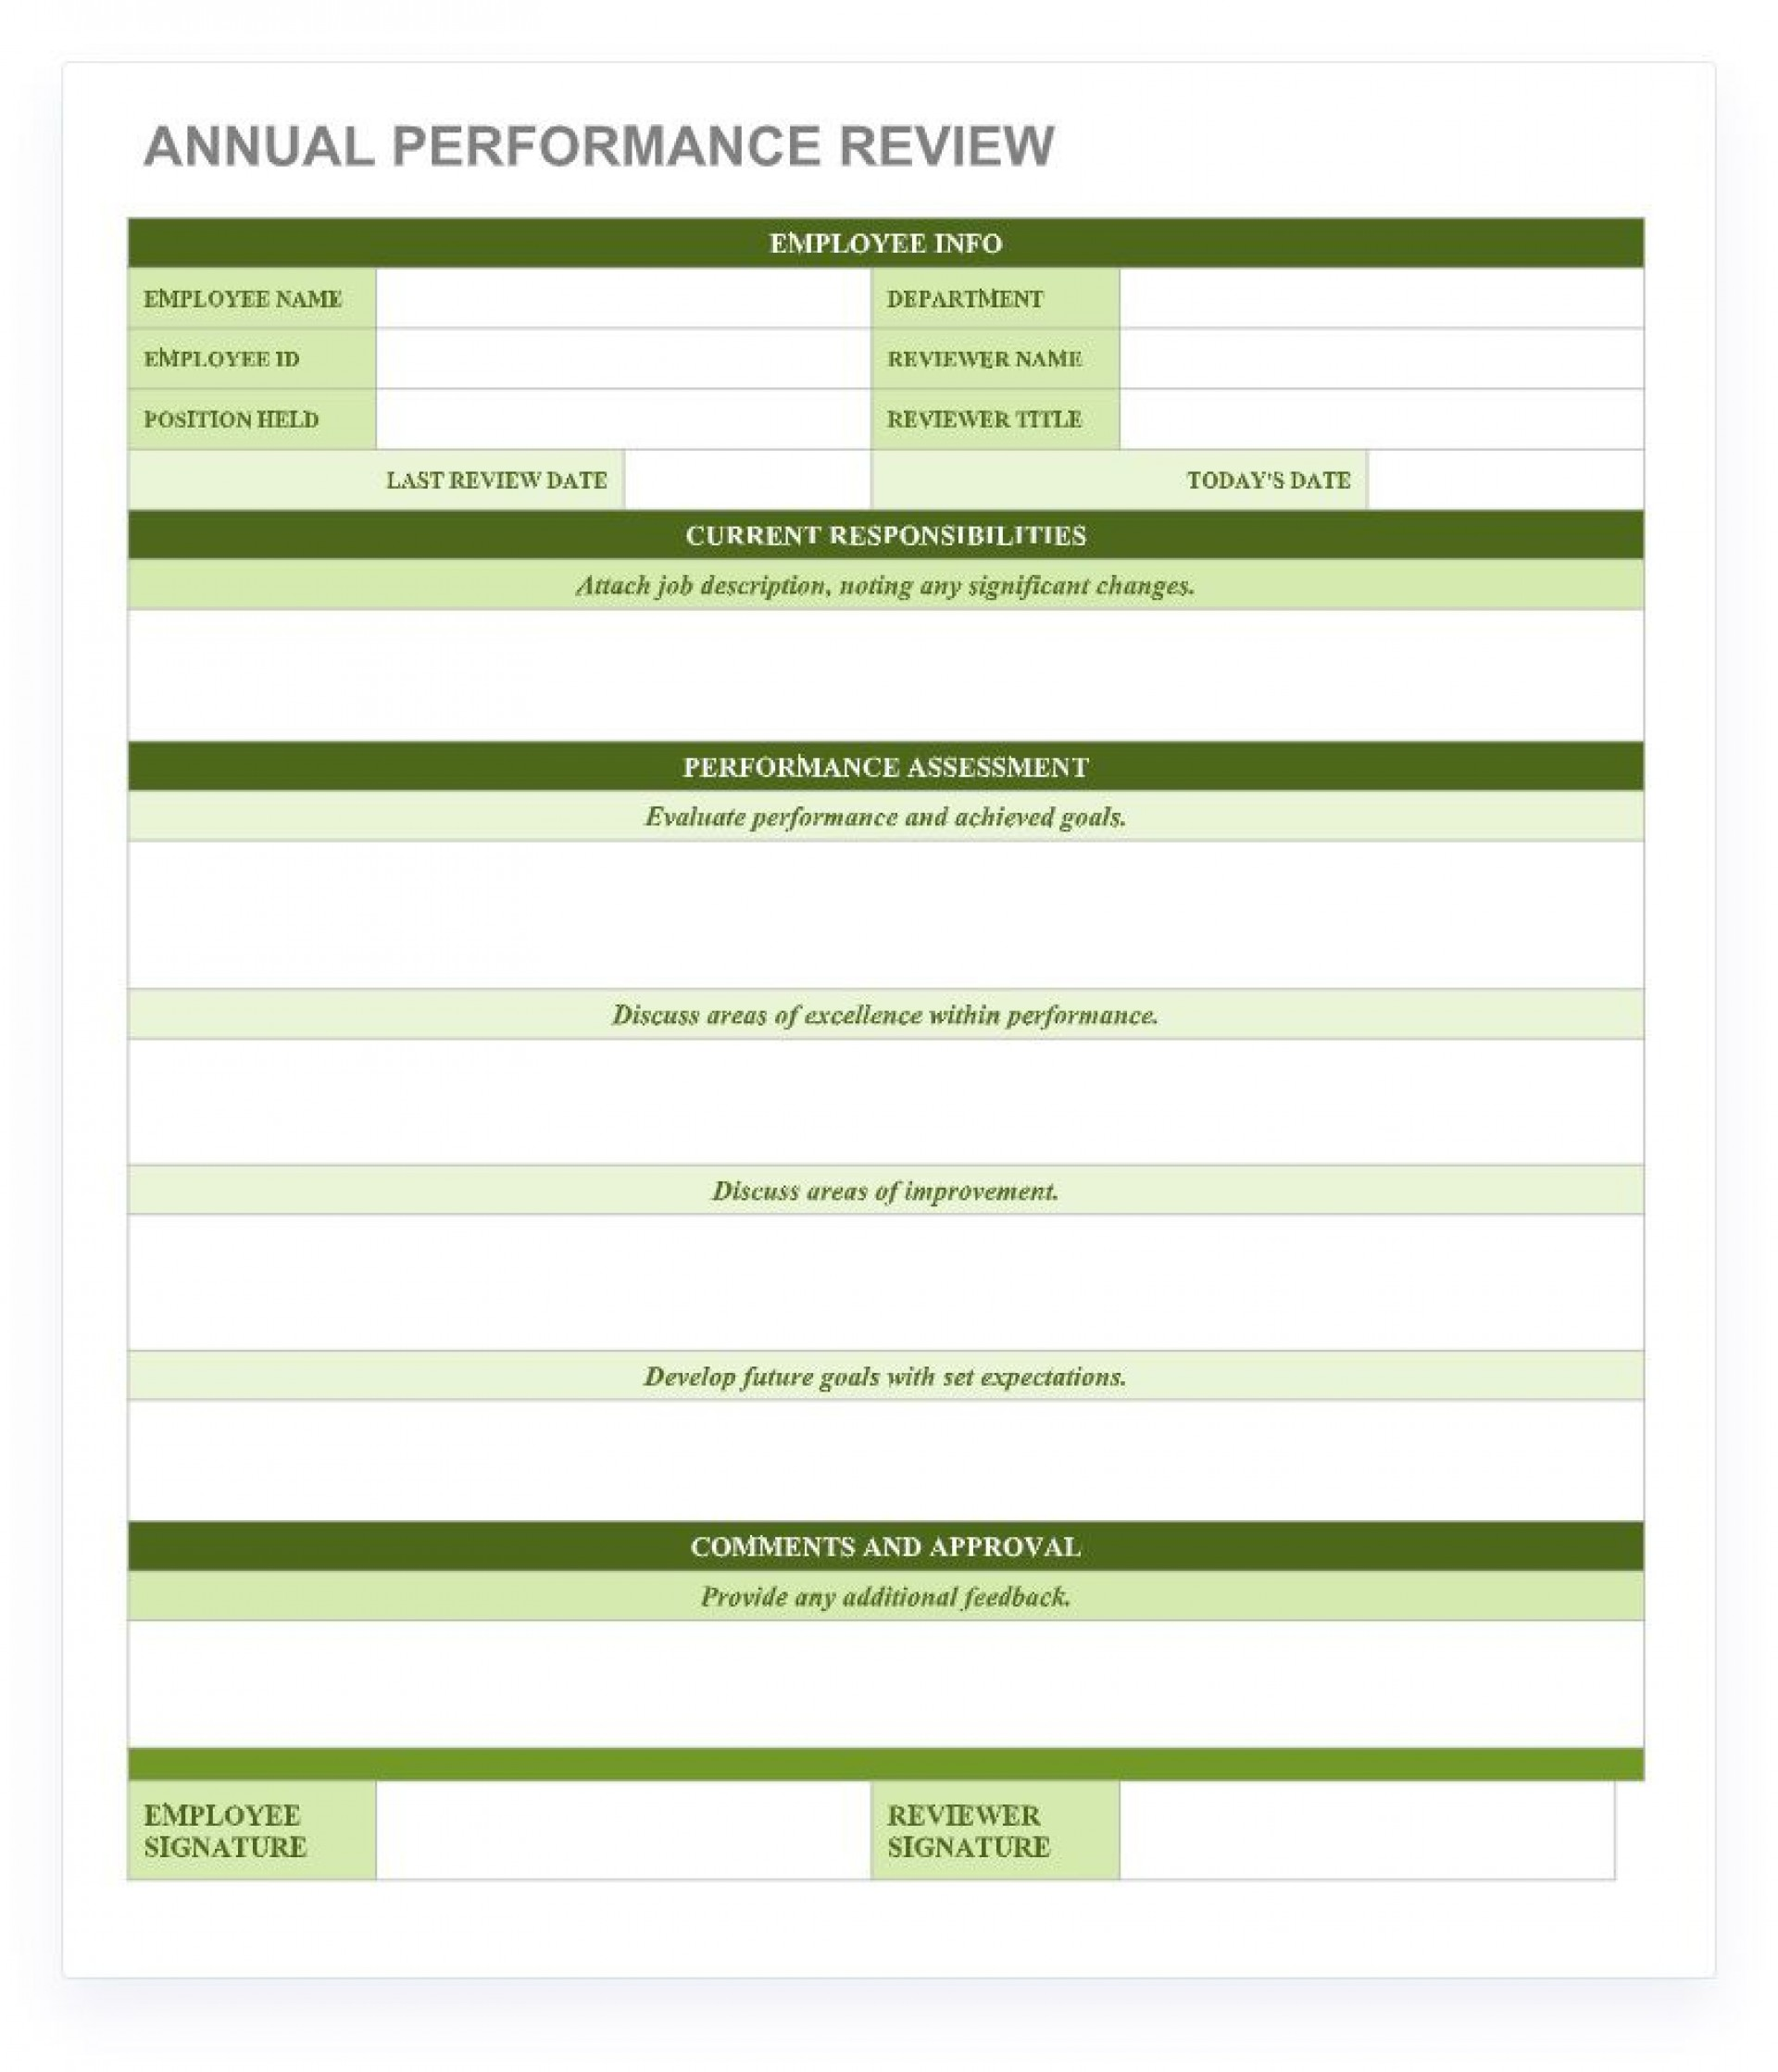 002 Marvelou Employee Performance Evaluation Template Idea  Templates Doc Form Free Download Appraisal Word1920